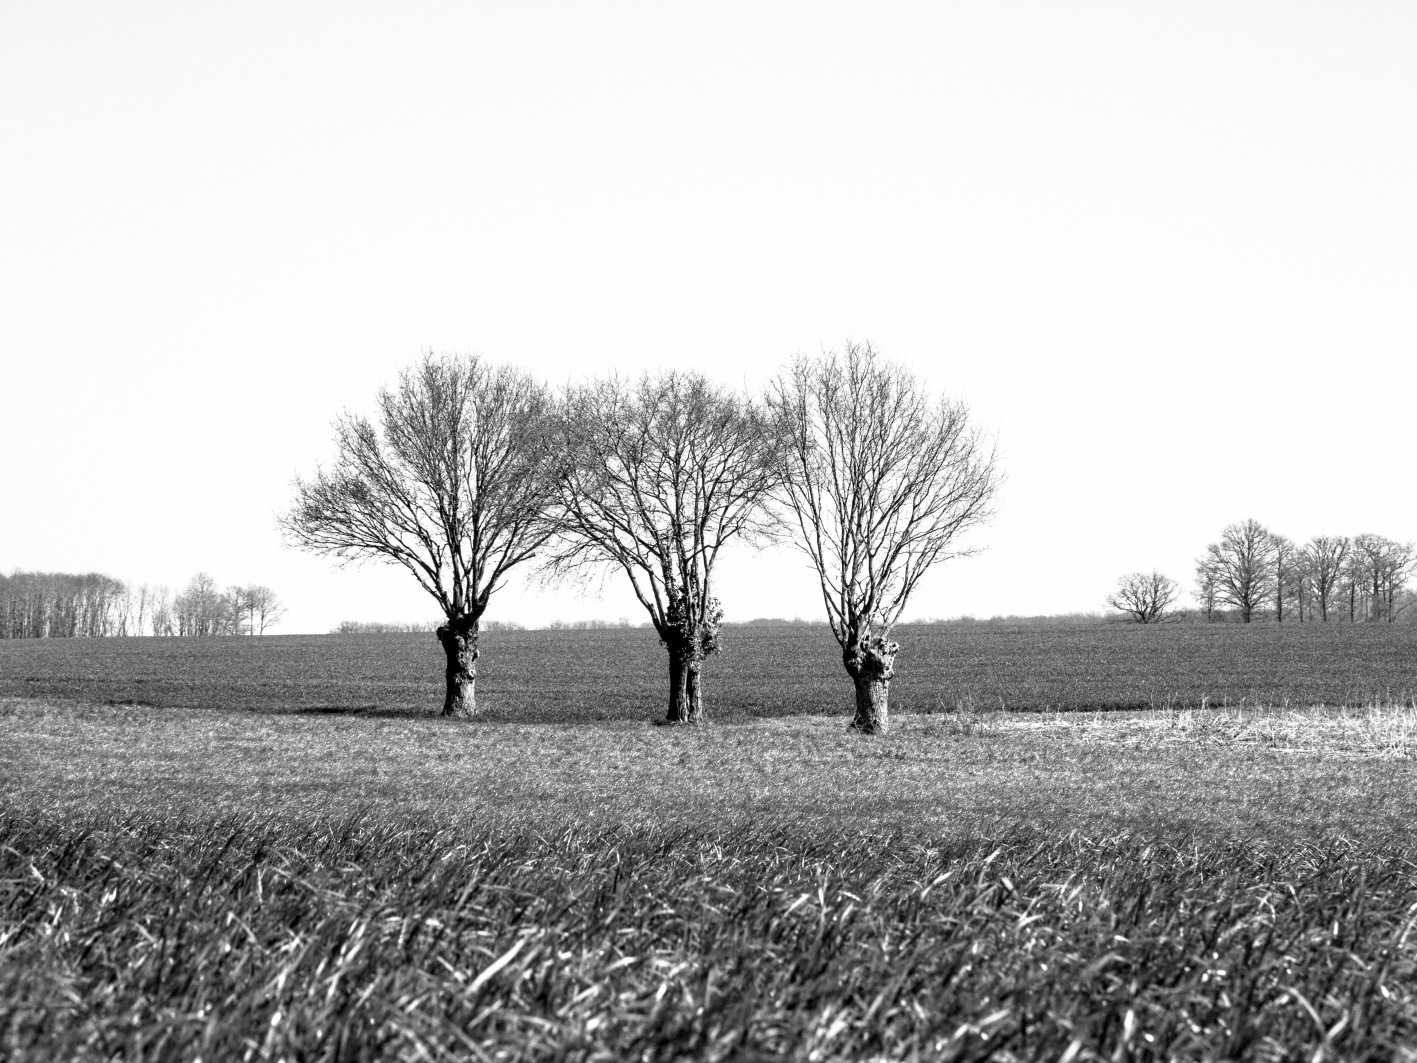 THREE TREES 070415_1766